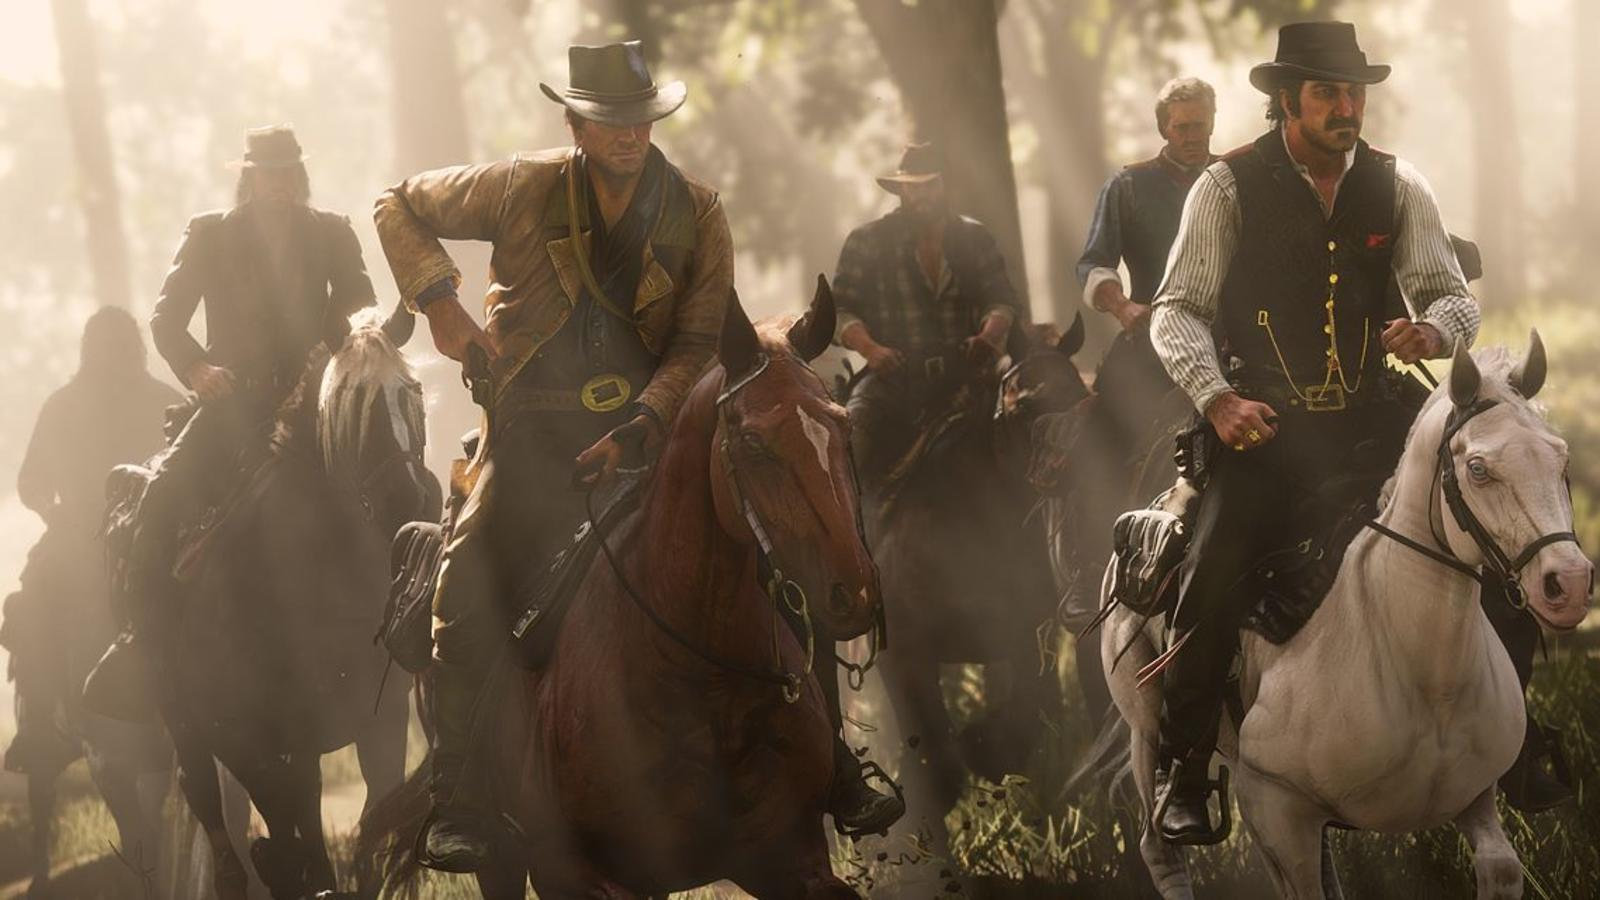 Red Dead Redemption 2 is the best action game on Xbox One